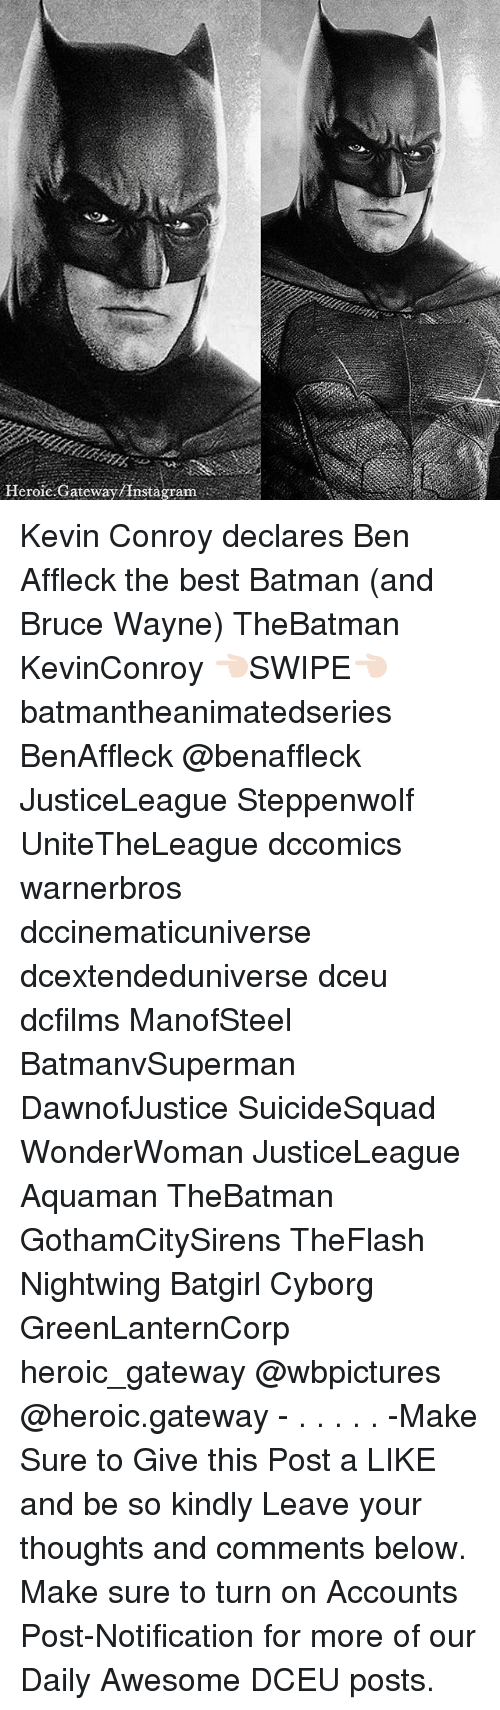 Best Batman: Heroic.Gateway/Instagram Kevin Conroy declares Ben Affleck the best Batman (and Bruce Wayne) TheBatman KevinConroy 👈🏻SWIPE👈🏻 batmantheanimatedseries BenAffleck @benaffleck JusticeLeague Steppenwolf UniteTheLeague dccomics warnerbros dccinematicuniverse dcextendeduniverse dceu dcfilms ManofSteel BatmanvSuperman DawnofJustice SuicideSquad WonderWoman JusticeLeague Aquaman TheBatman GothamCitySirens TheFlash Nightwing Batgirl Cyborg GreenLanternCorp heroic_gateway @wbpictures @heroic.gateway - . . . . . -Make Sure to Give this Post a LIKE and be so kindly Leave your thoughts and comments below. Make sure to turn on Accounts Post-Notification for more of our Daily Awesome DCEU posts.